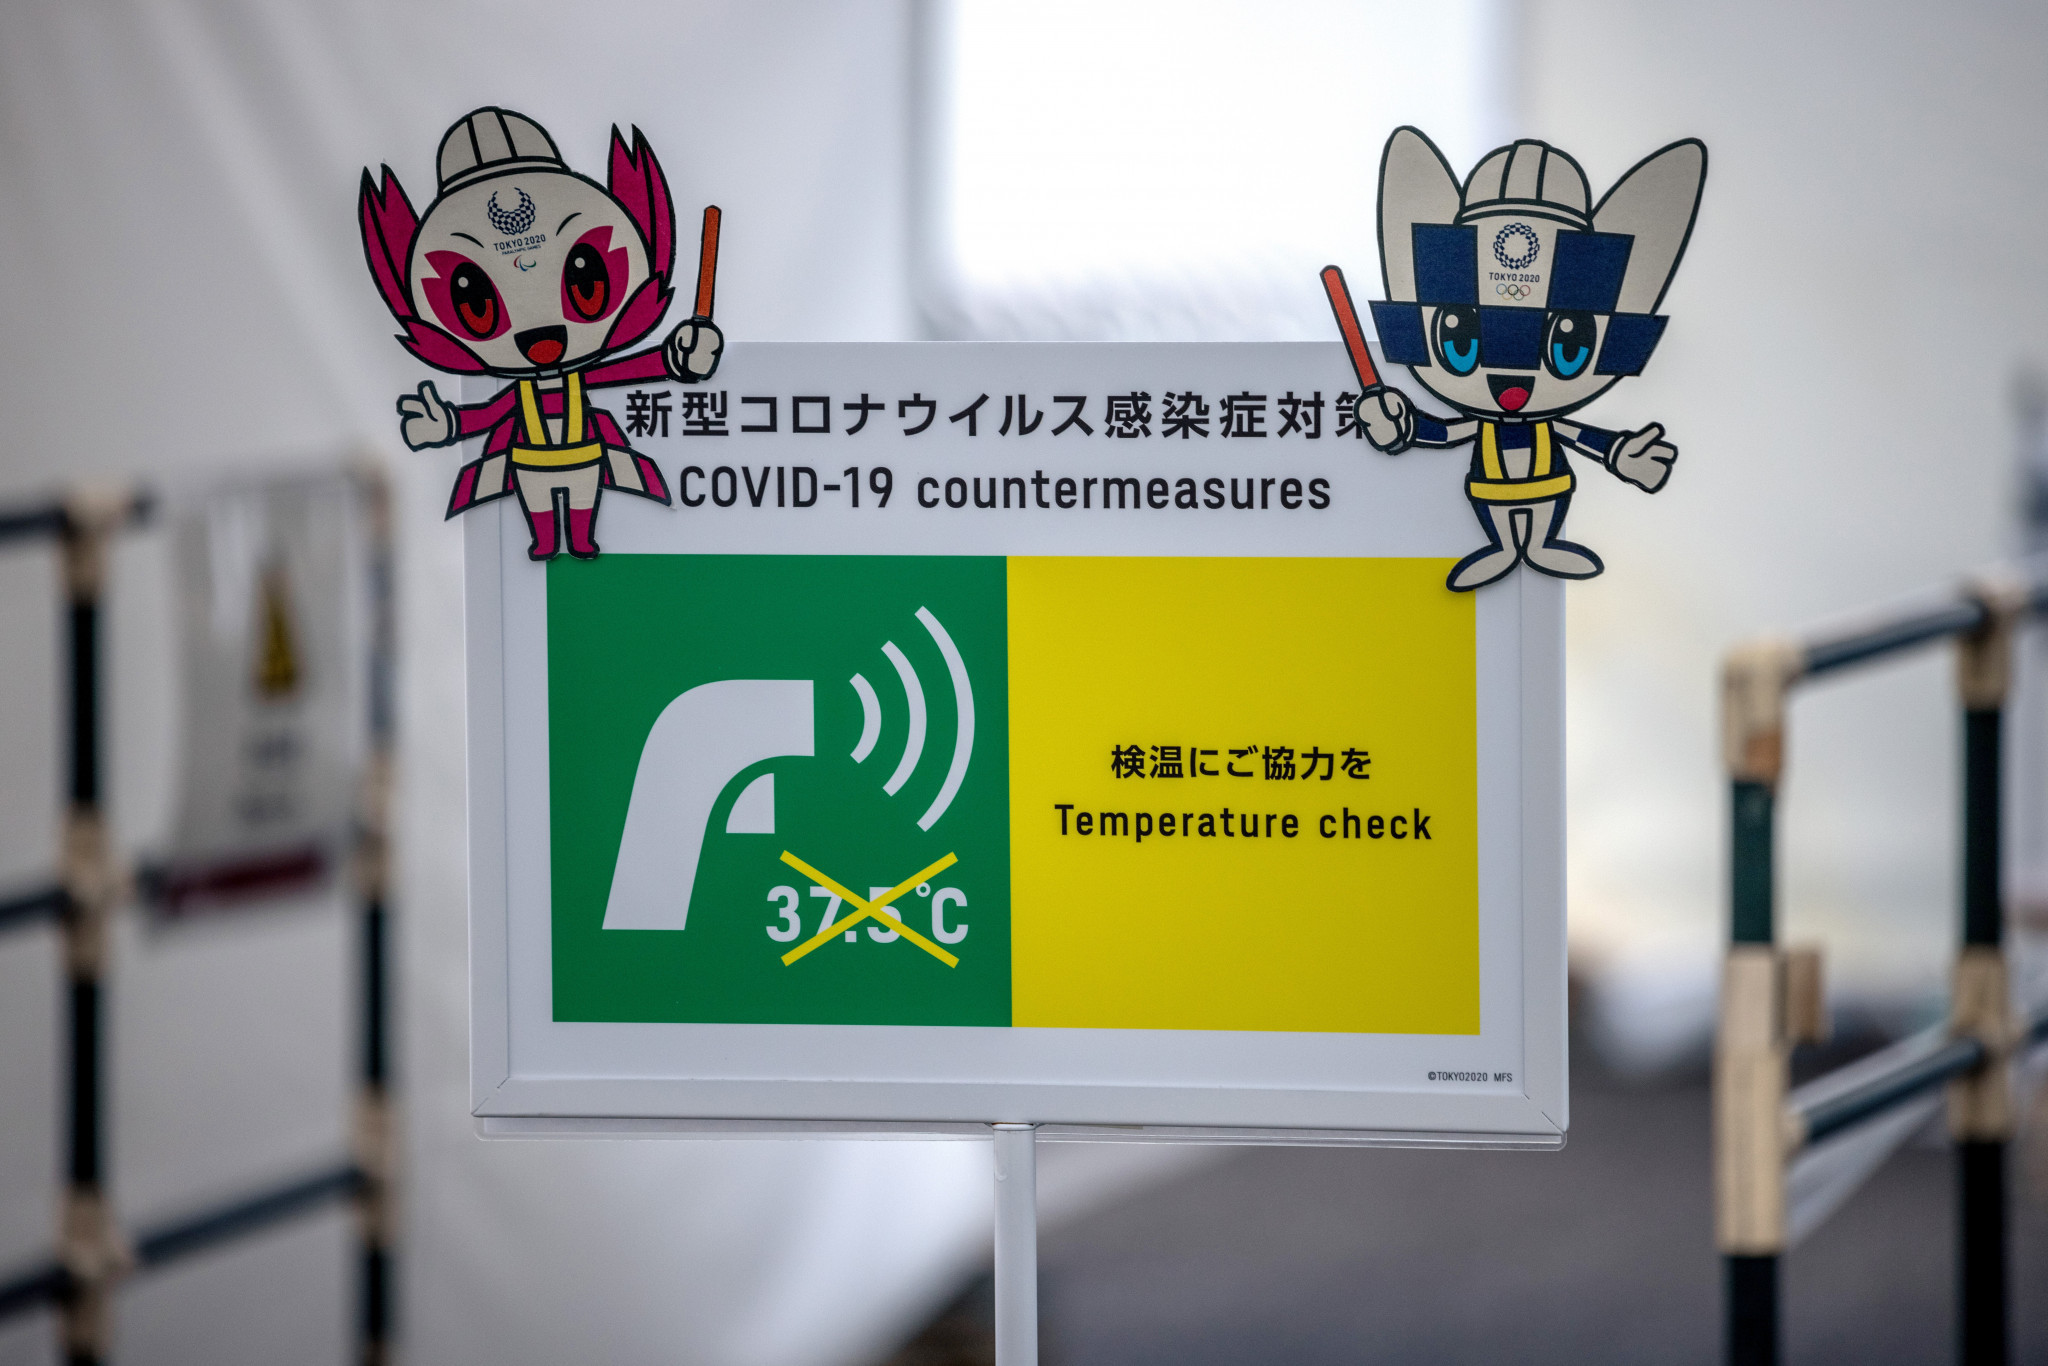 Tokyo 2020 organisers have implemented a series of measures in a bid to reduce the spread of COVID-19 ©Getty Images